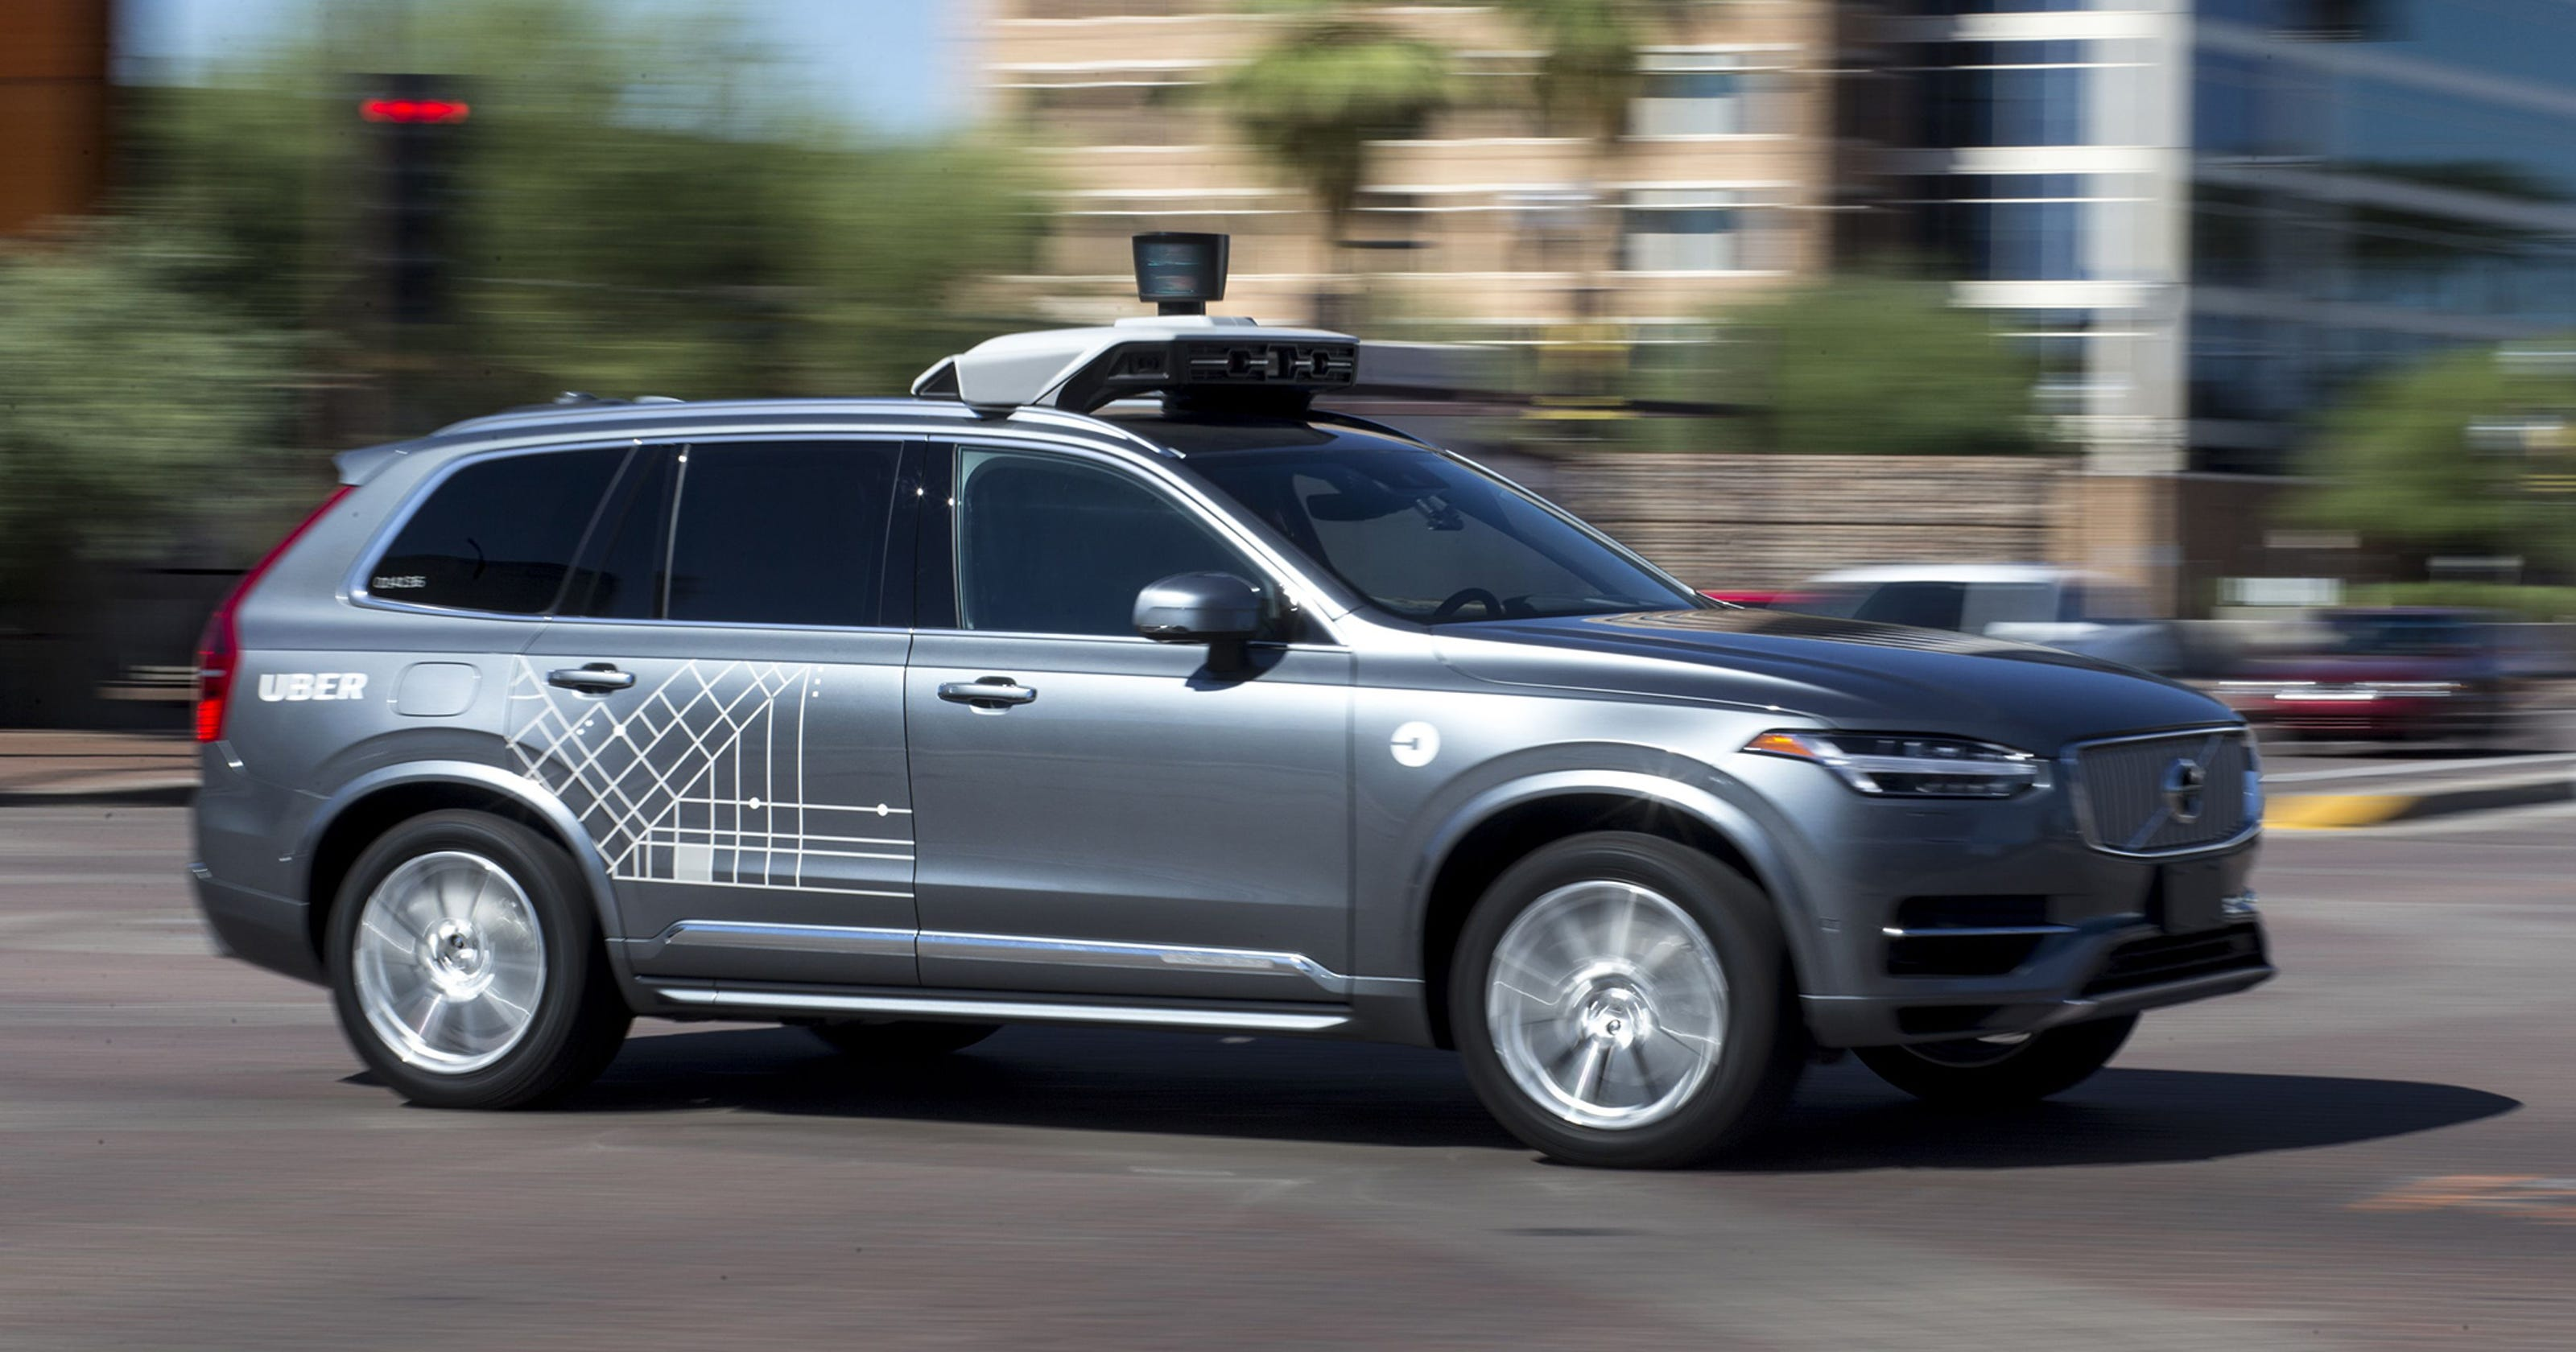 uber self-driving car crash: vehicle saw woman 6 seconds before accident